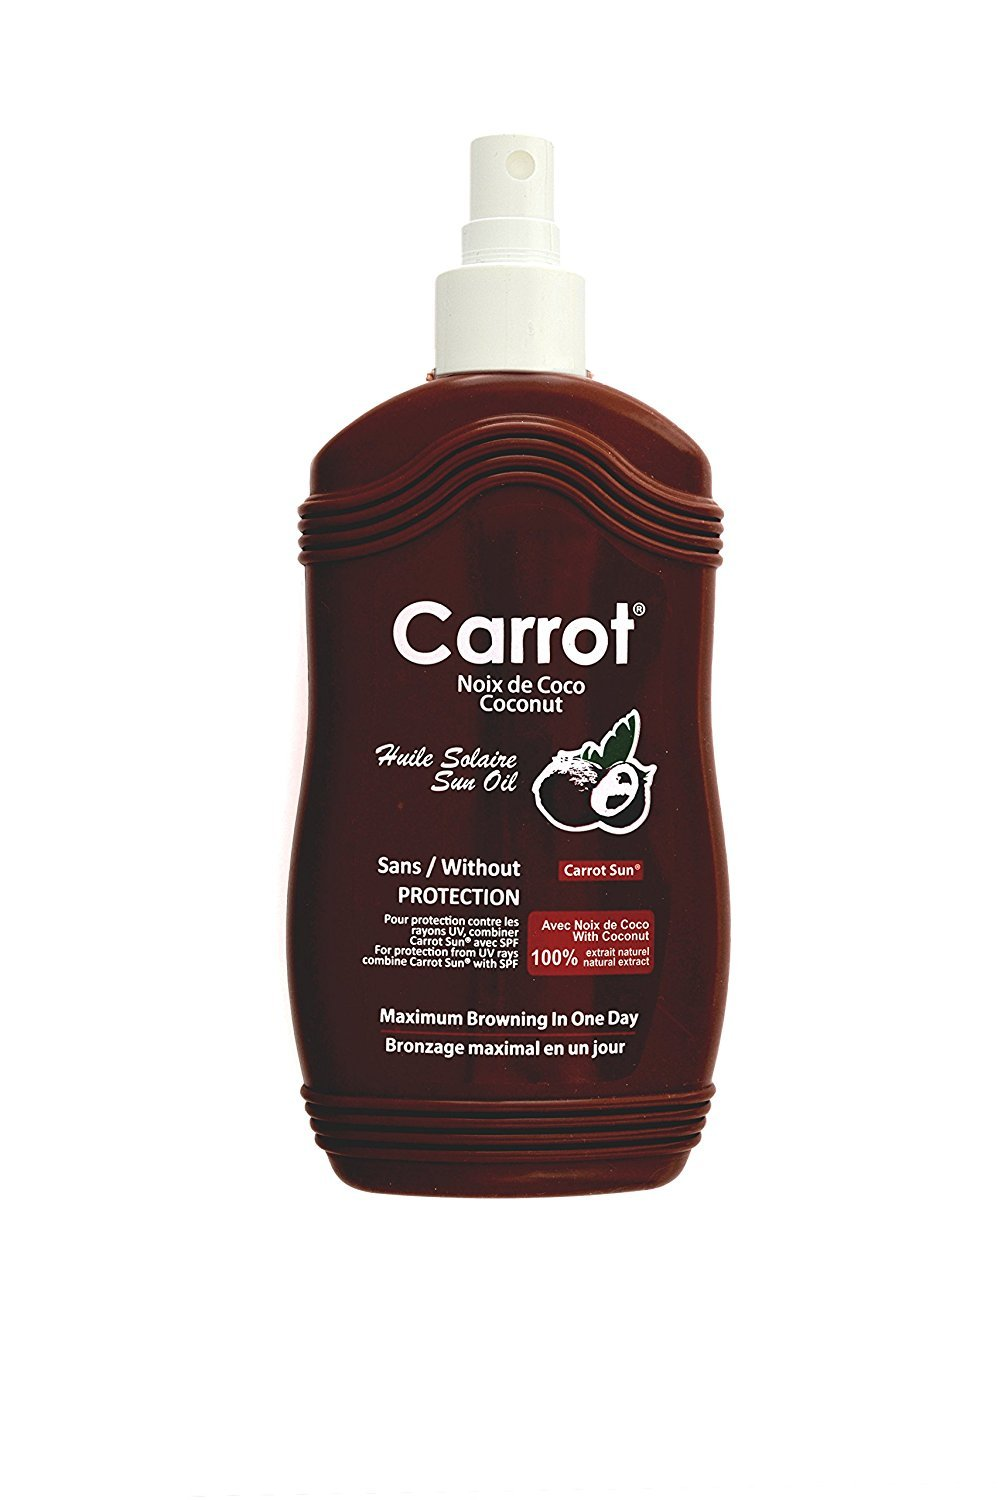 Carrot Sun Coconut Tan Accelerator Spray Oil with Coconut Oil & L-Tyrosine for a GOLDEN tan-FAST! 200ml Sarah Trading